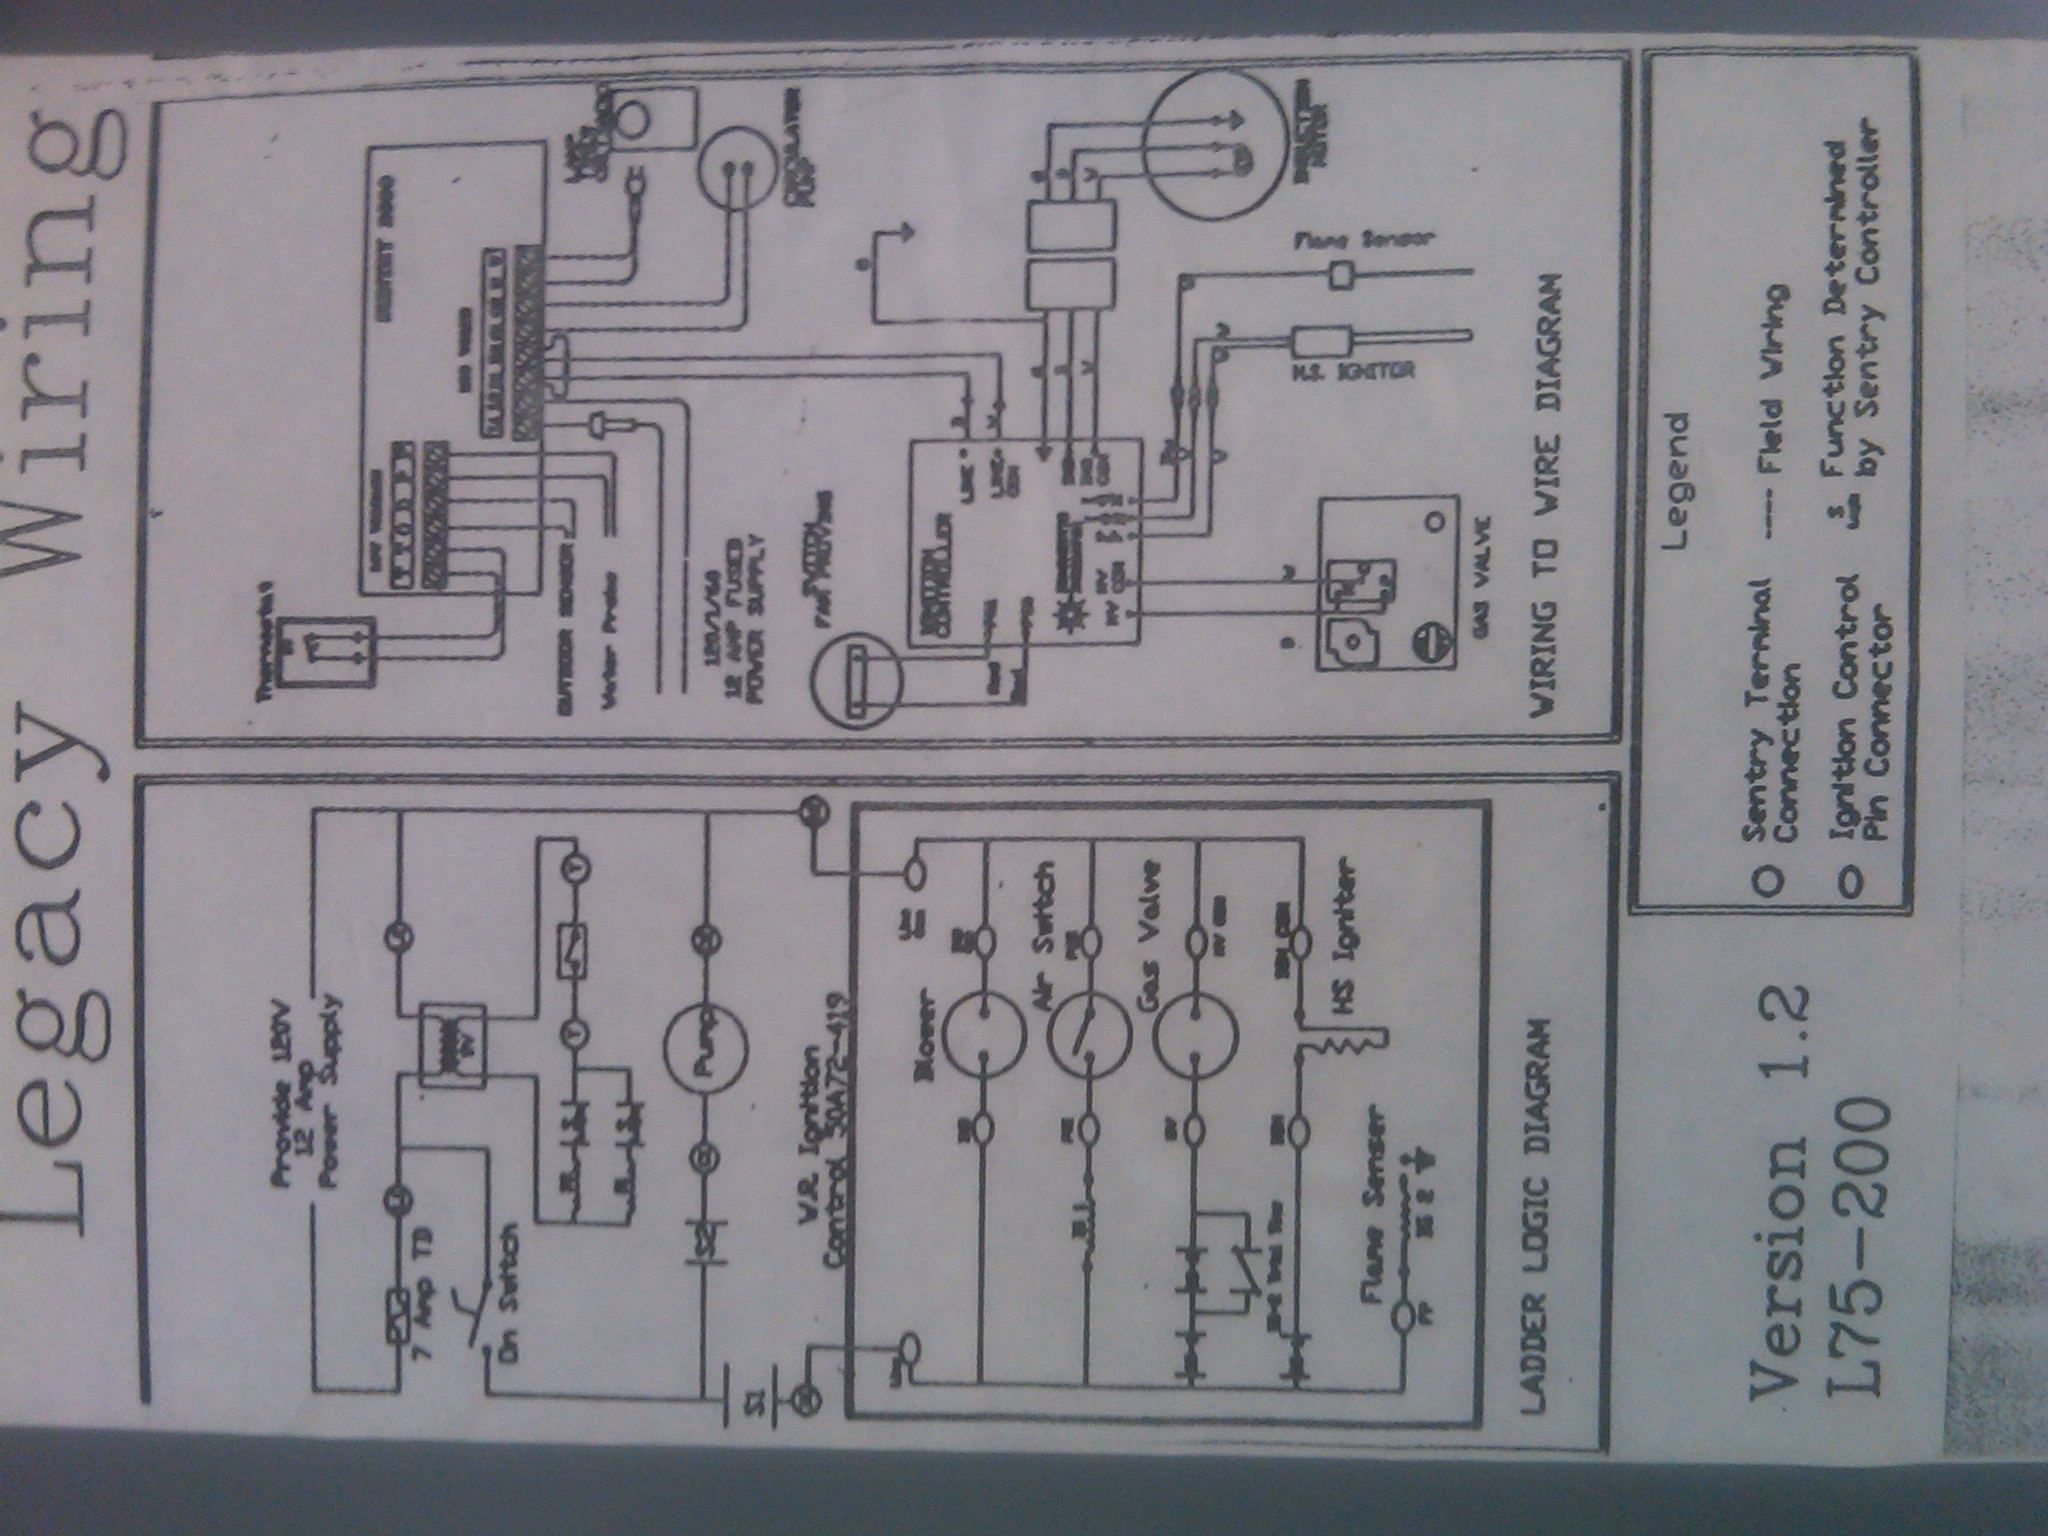 Fantastic Caleffi Zone Valve Wiring Diagram Mold - Electrical and ...